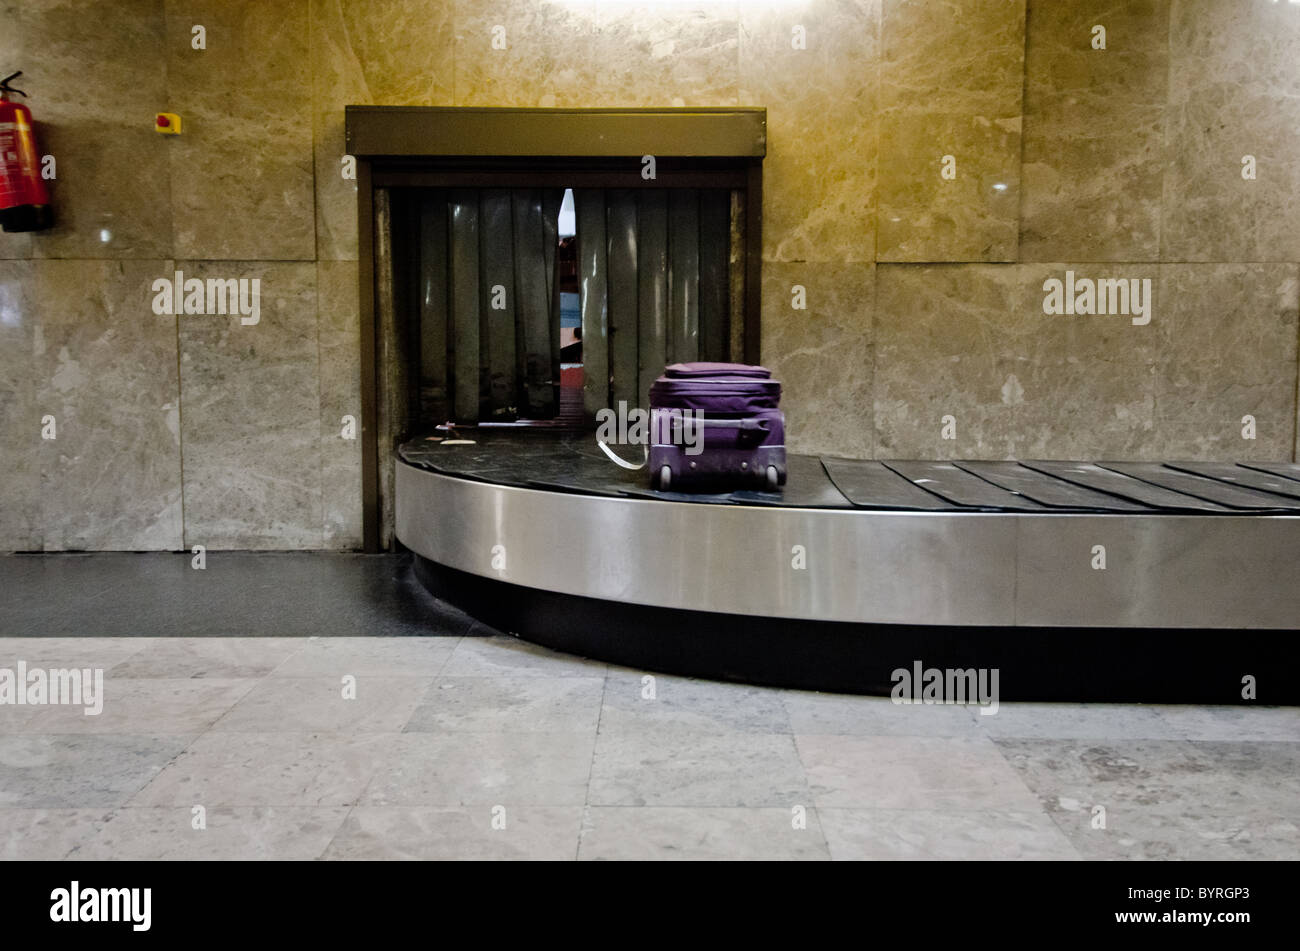 lost luggage airport conveyor belt - Stock Image